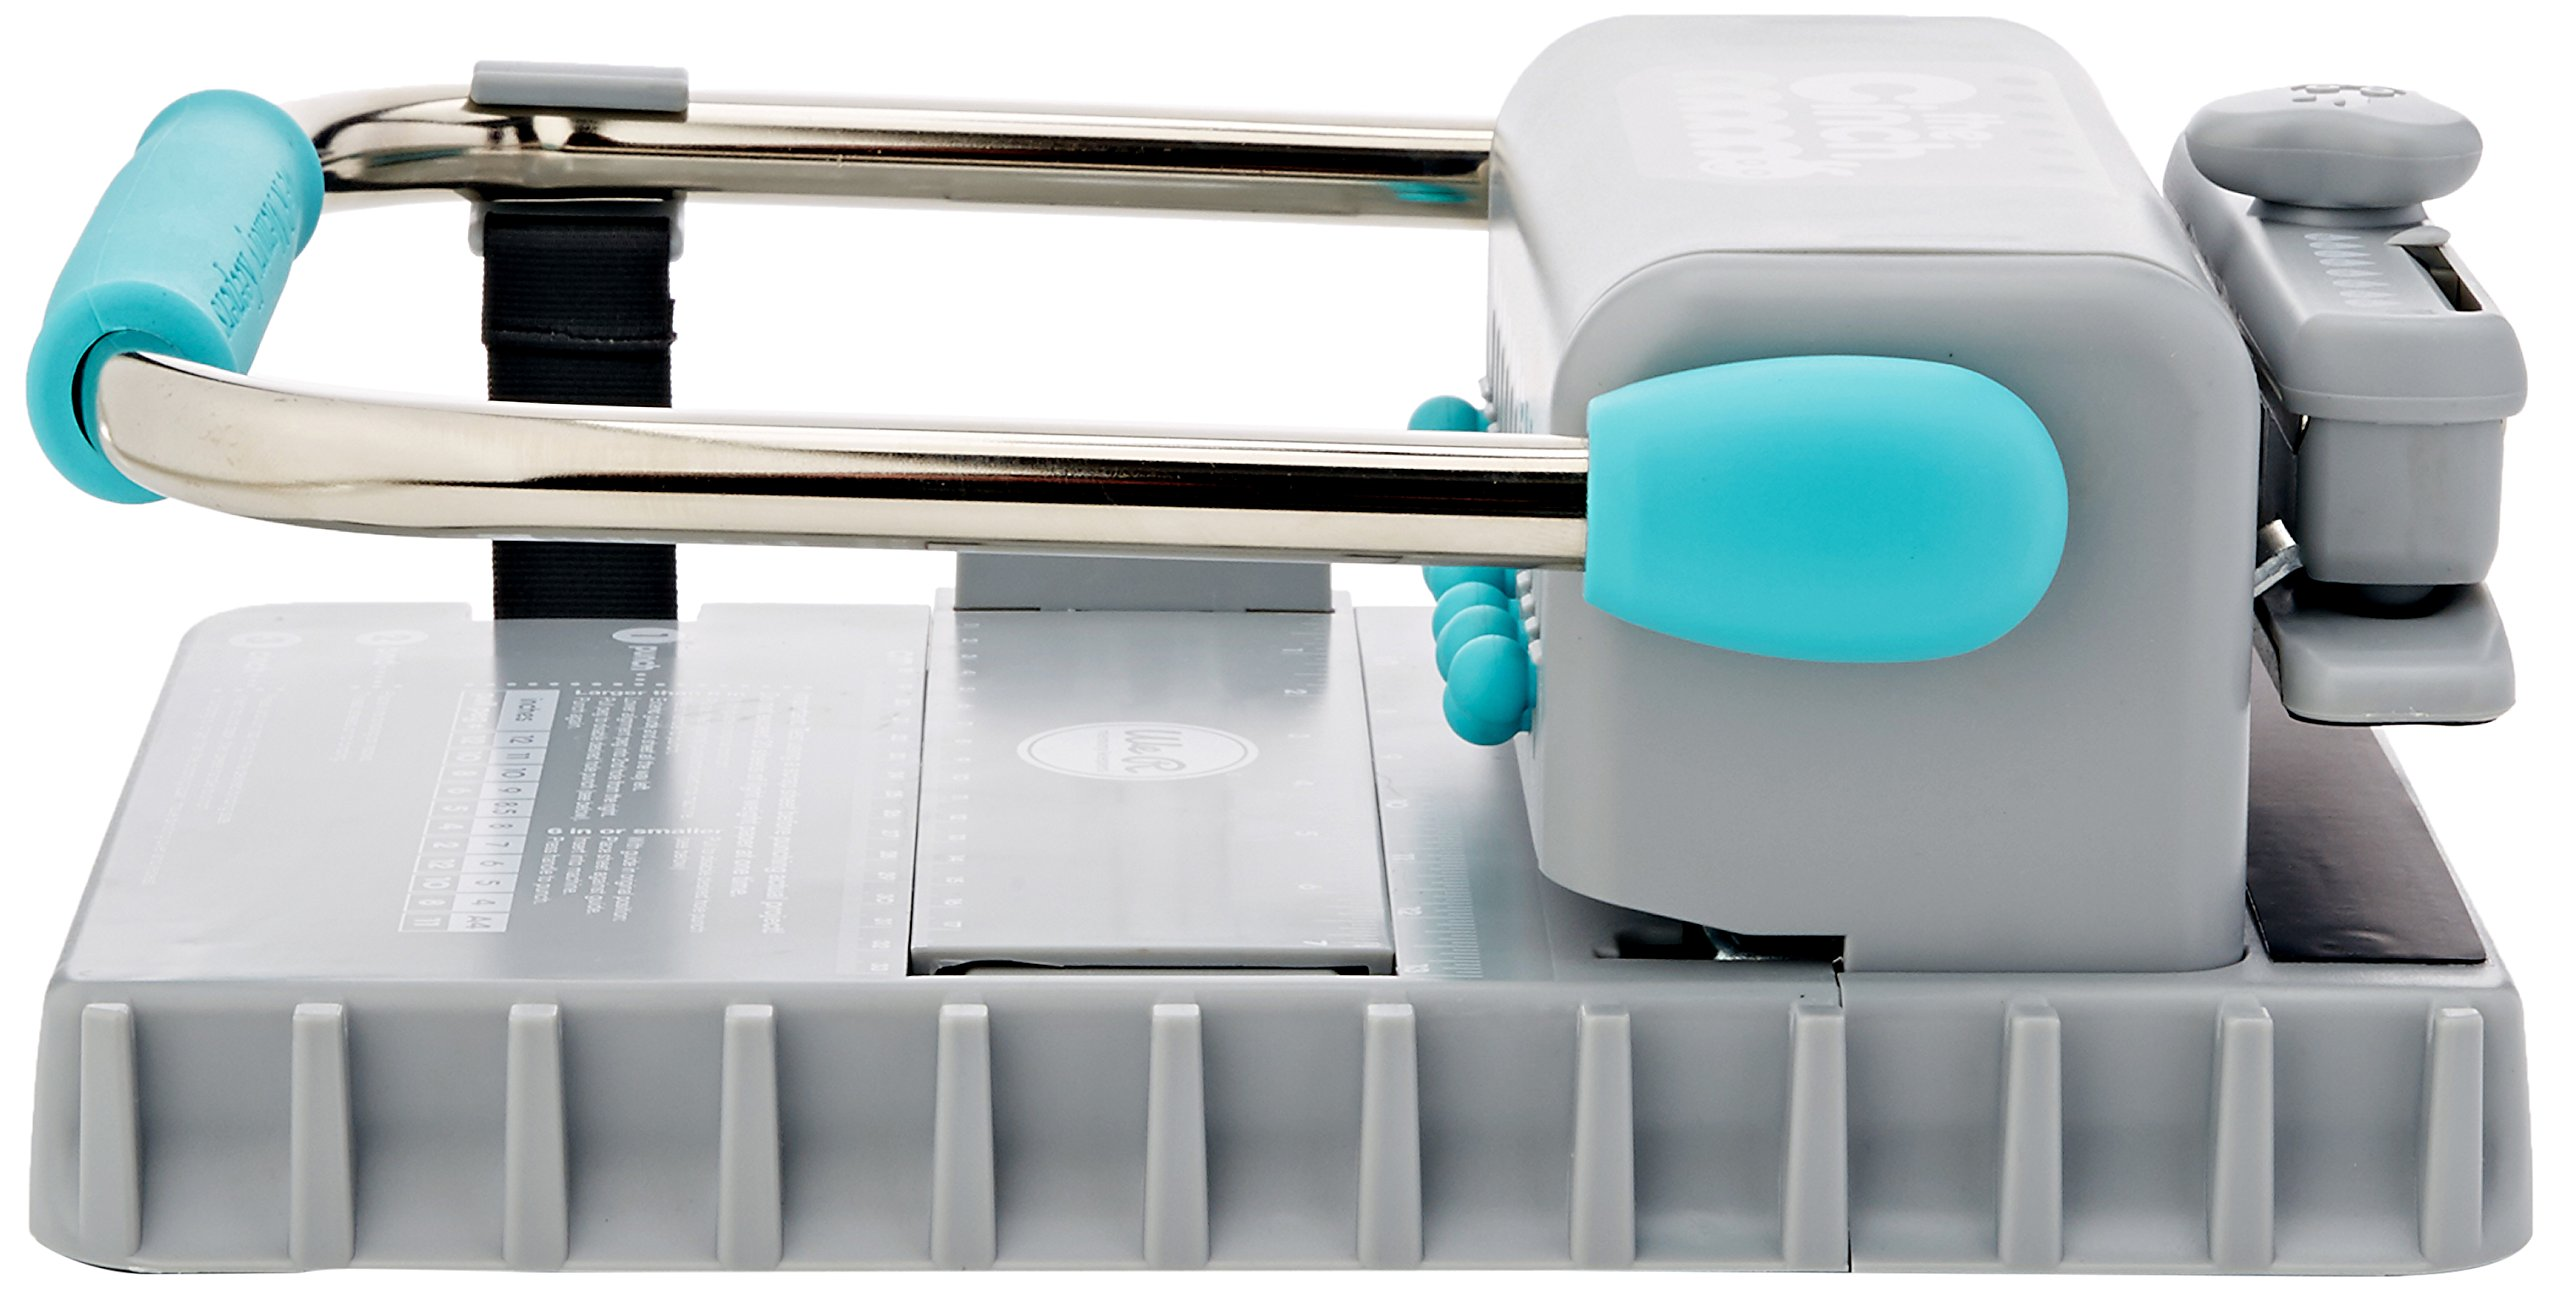 The Cinch Book Binding Machine, Version 2 by We R Memory Keepers   Teal and Gray by We R Memory Keepers (Image #3)